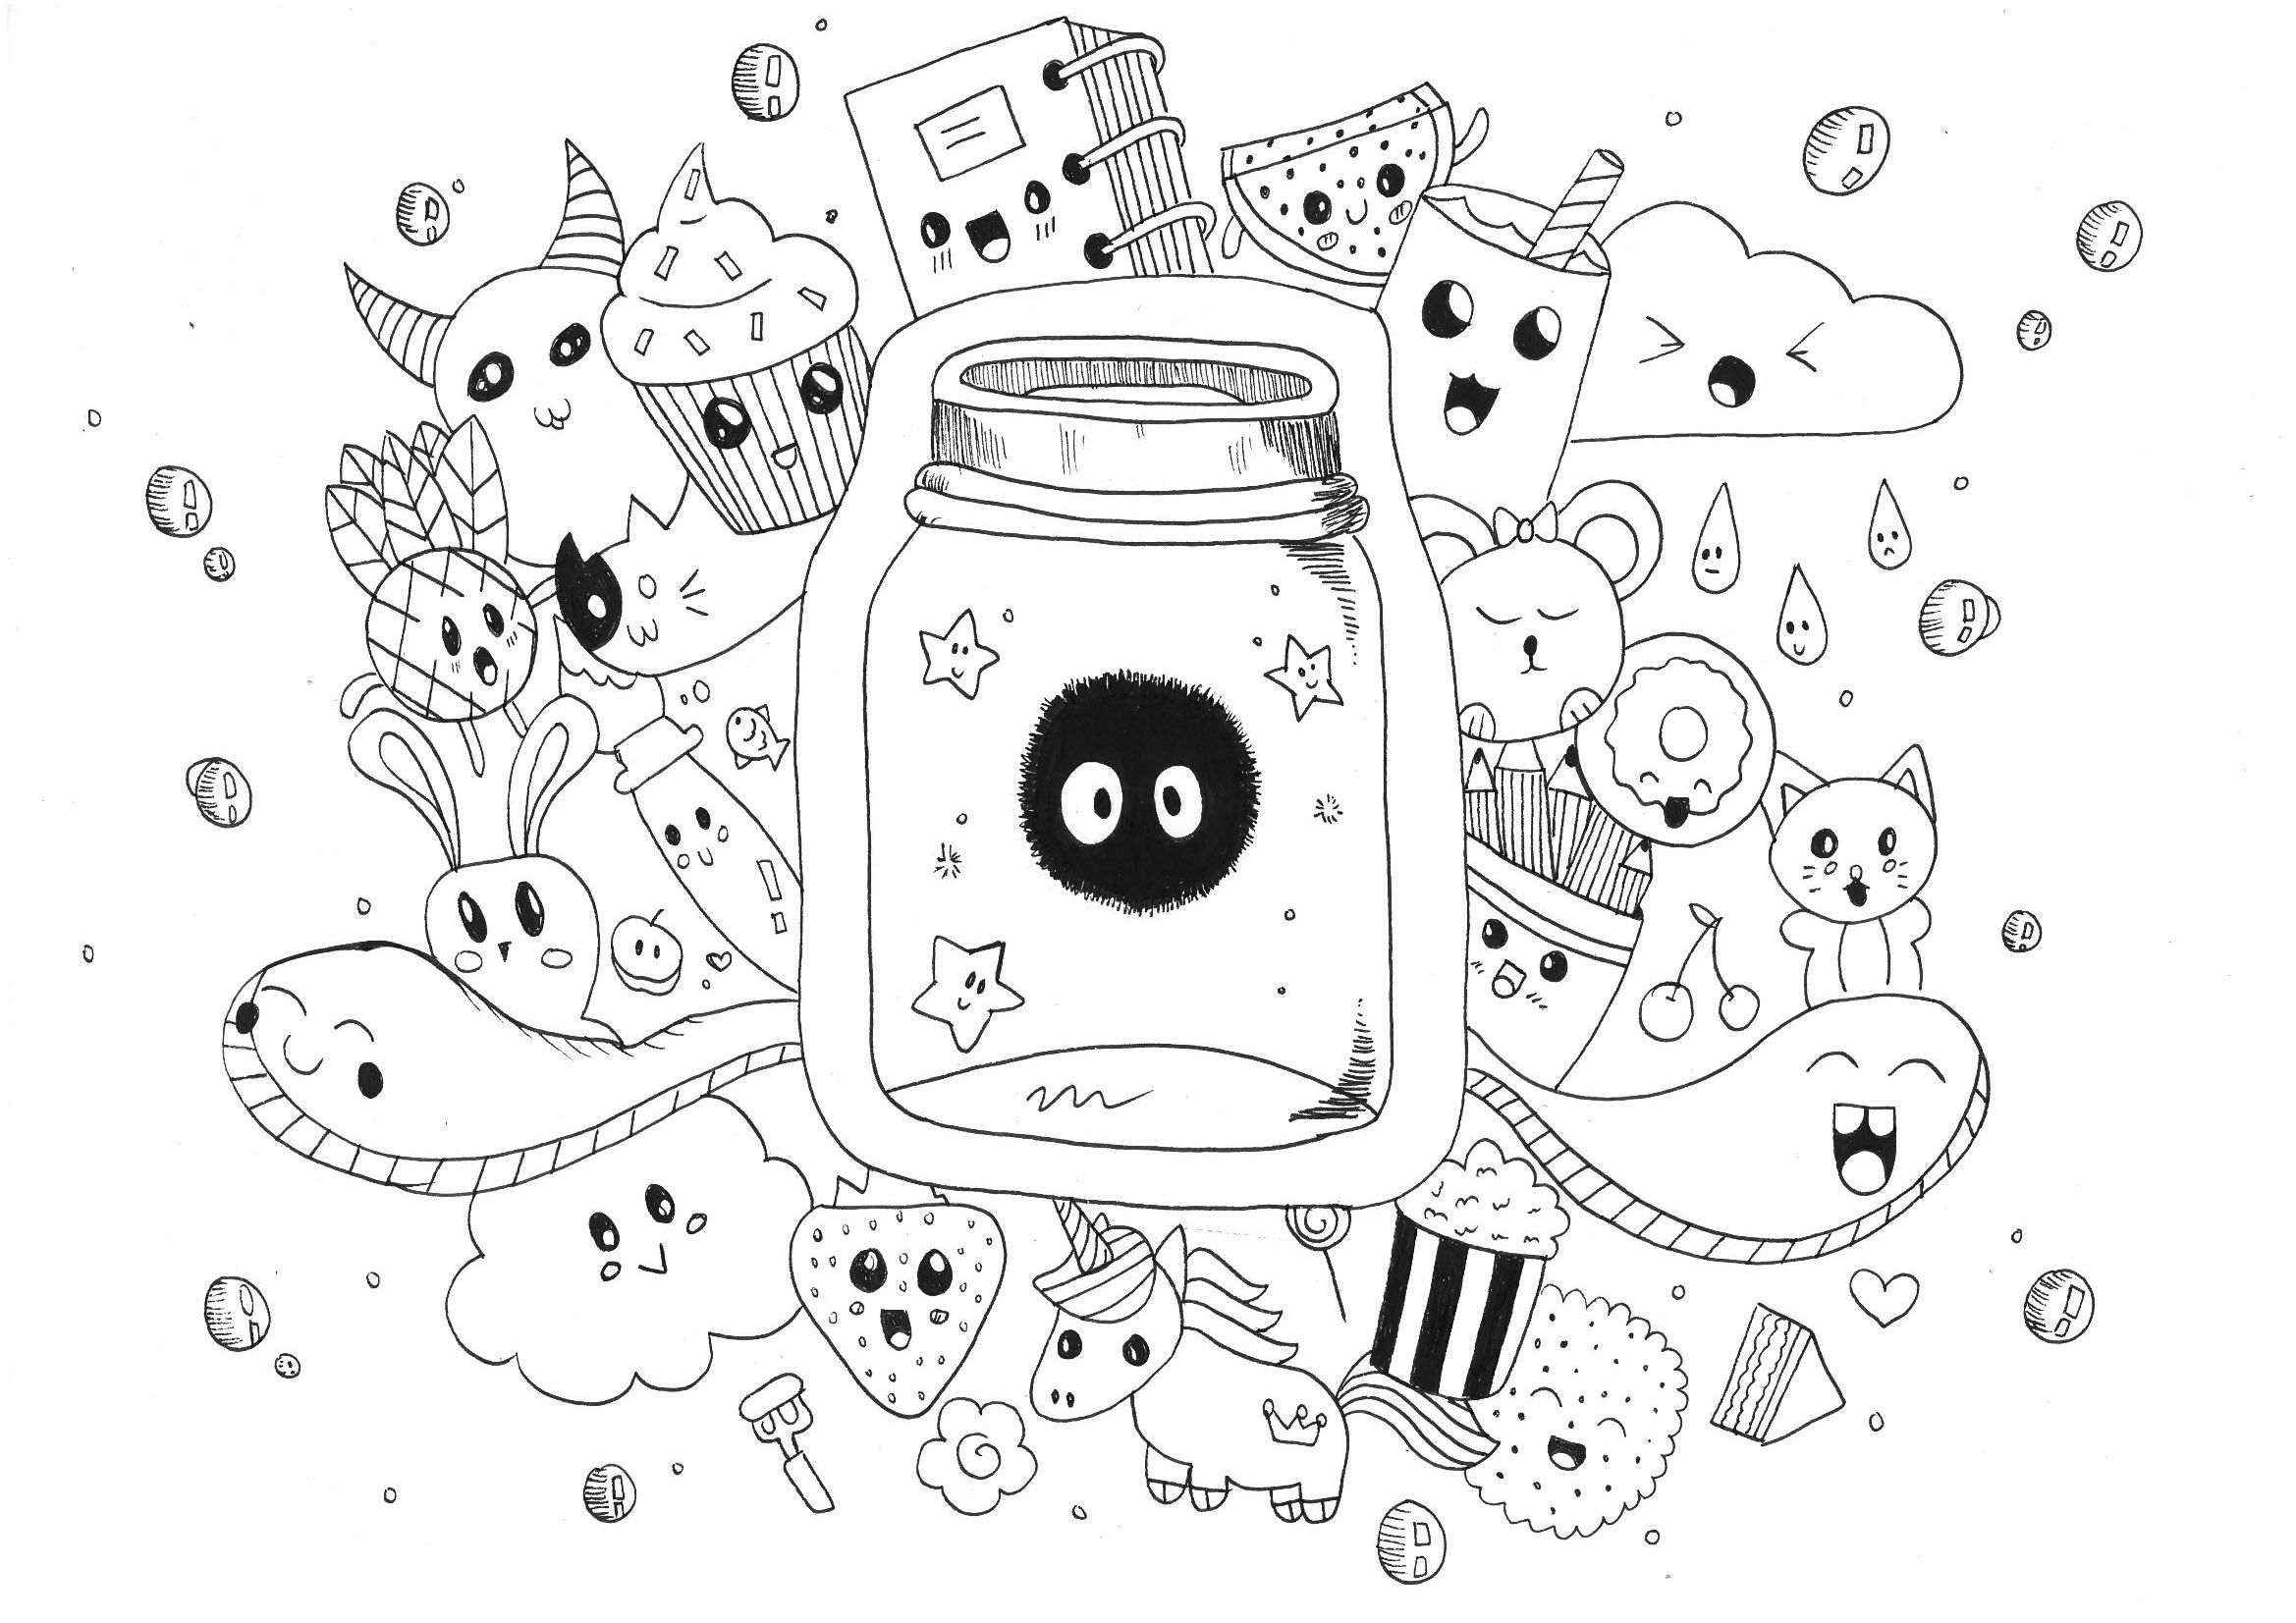 Kawaii Coloriage Livre.Cute Monsters Unicorns And Funny Animals A Doodle Very